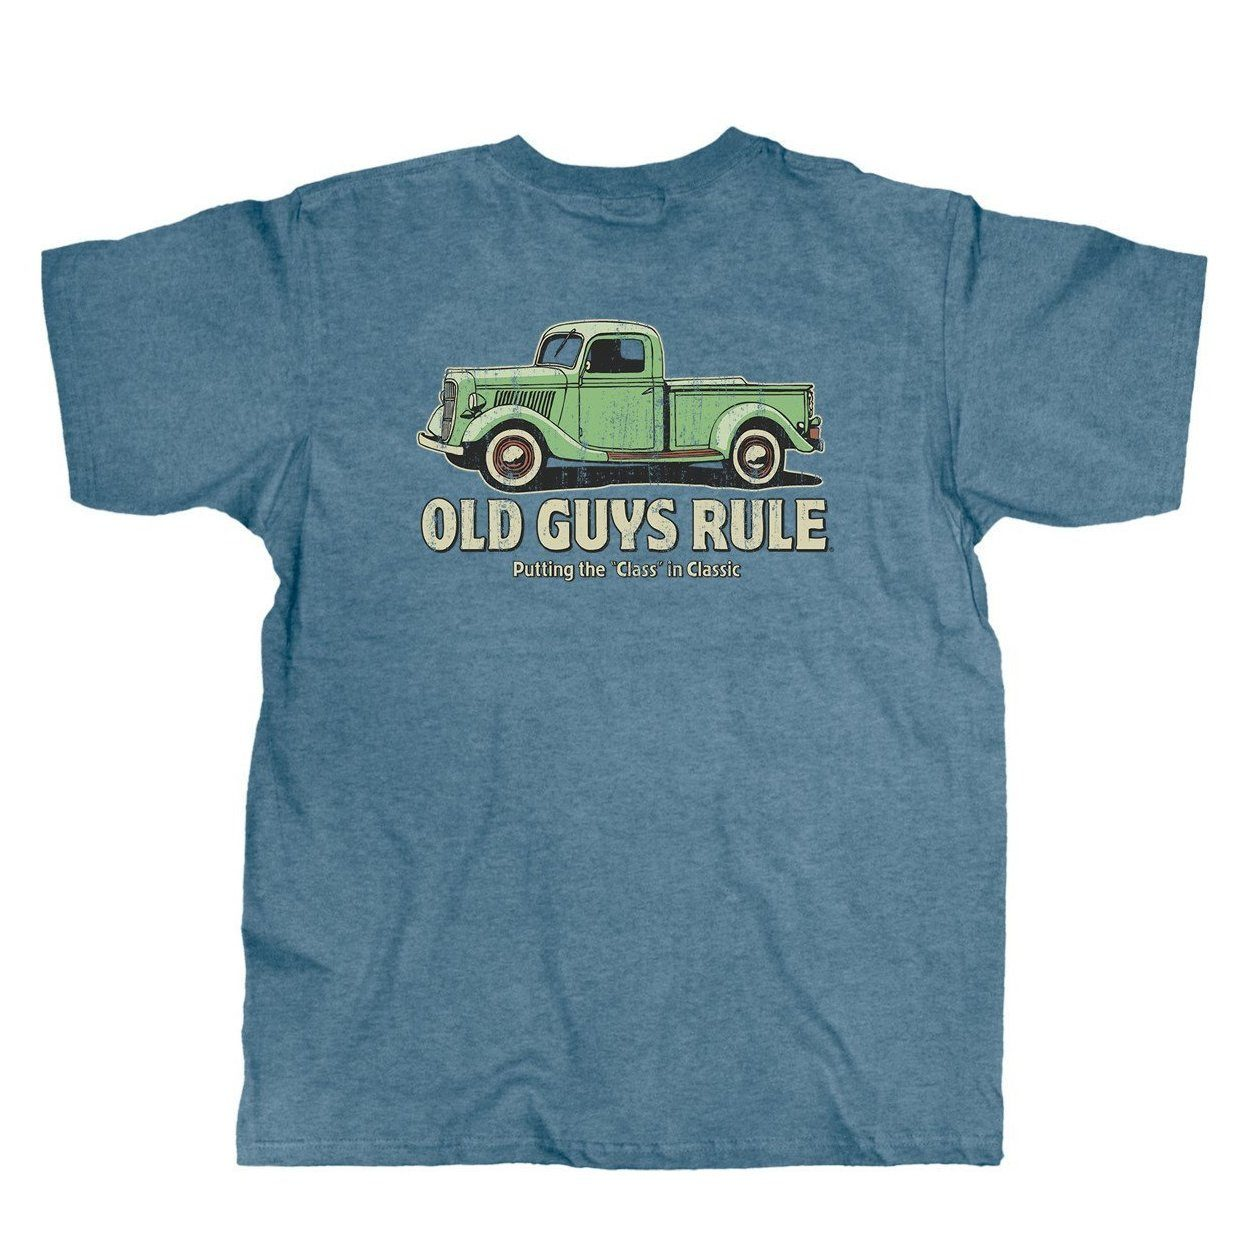 Old Guys Rule - Classic Truck - Heather Indigo T-Shirt - Main View